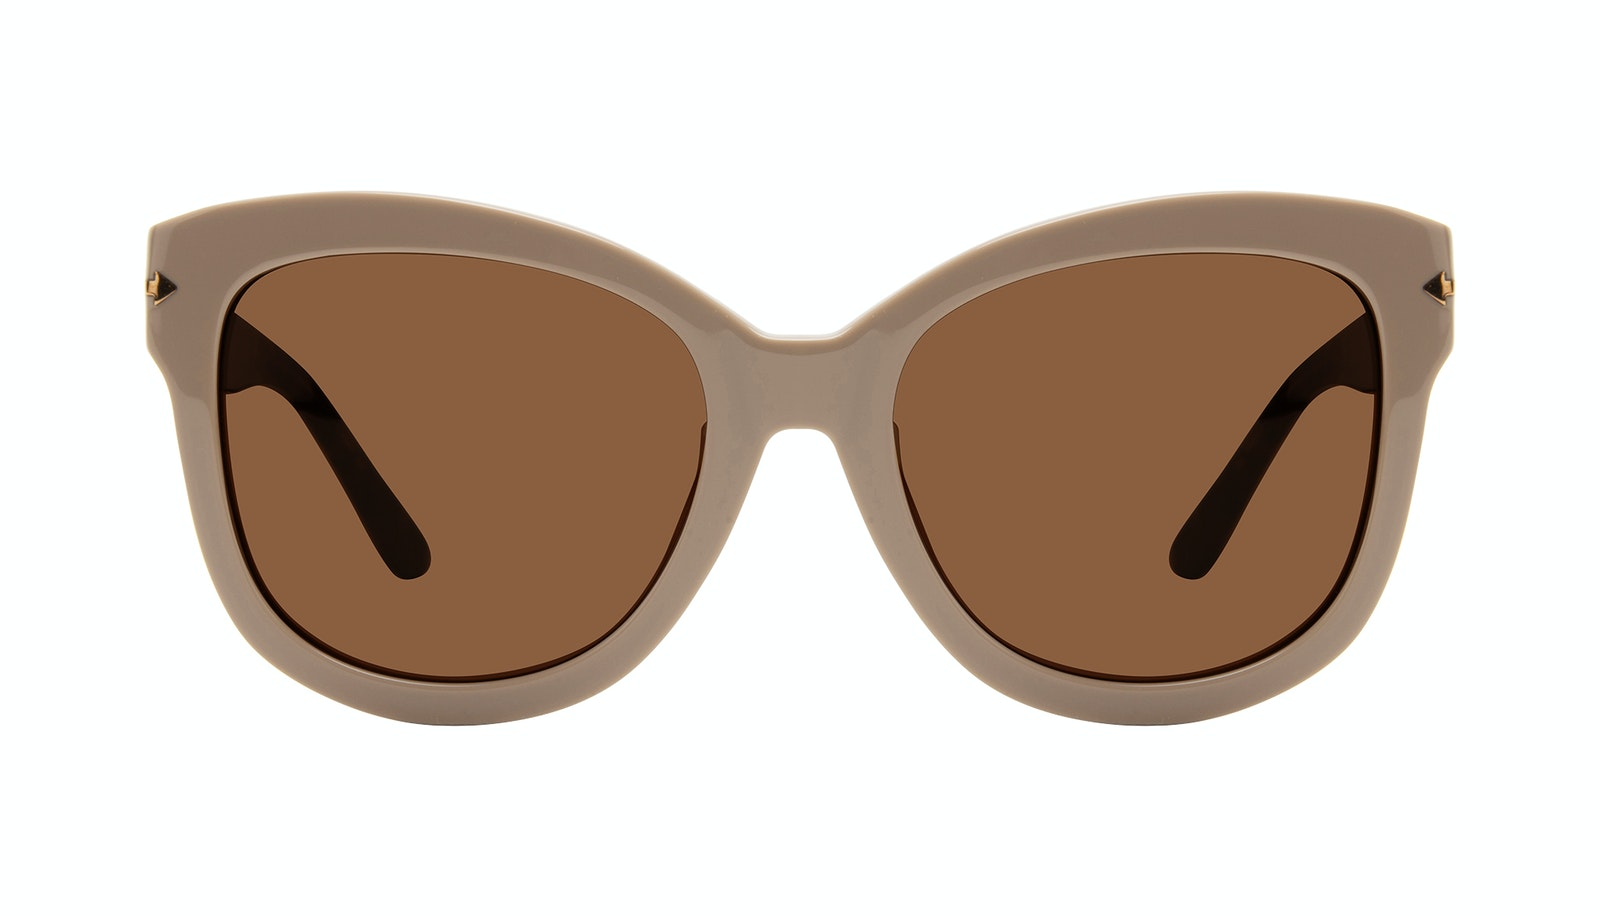 Affordable Fashion Glasses Square Sunglasses Women Marlo Latte